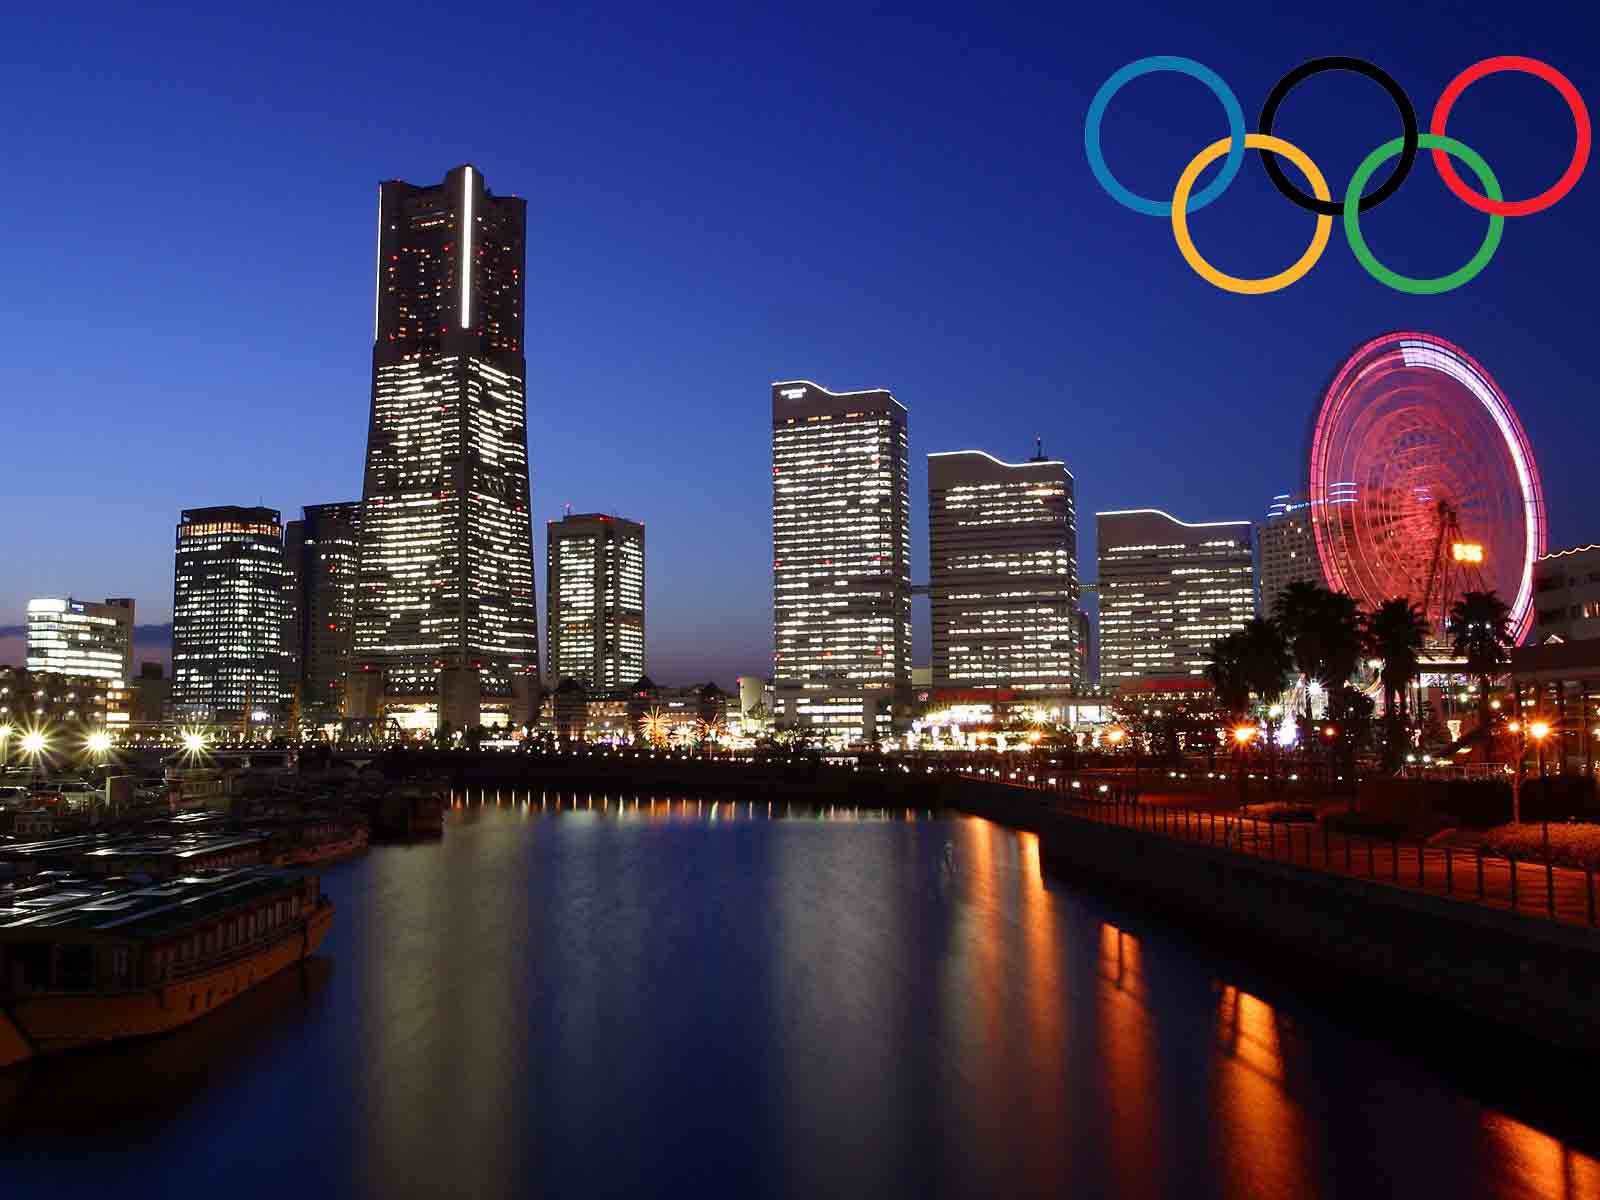 A MEMBER OF THE JAPANESE OLYMPIC COMMITTEE DONE HIMSELF